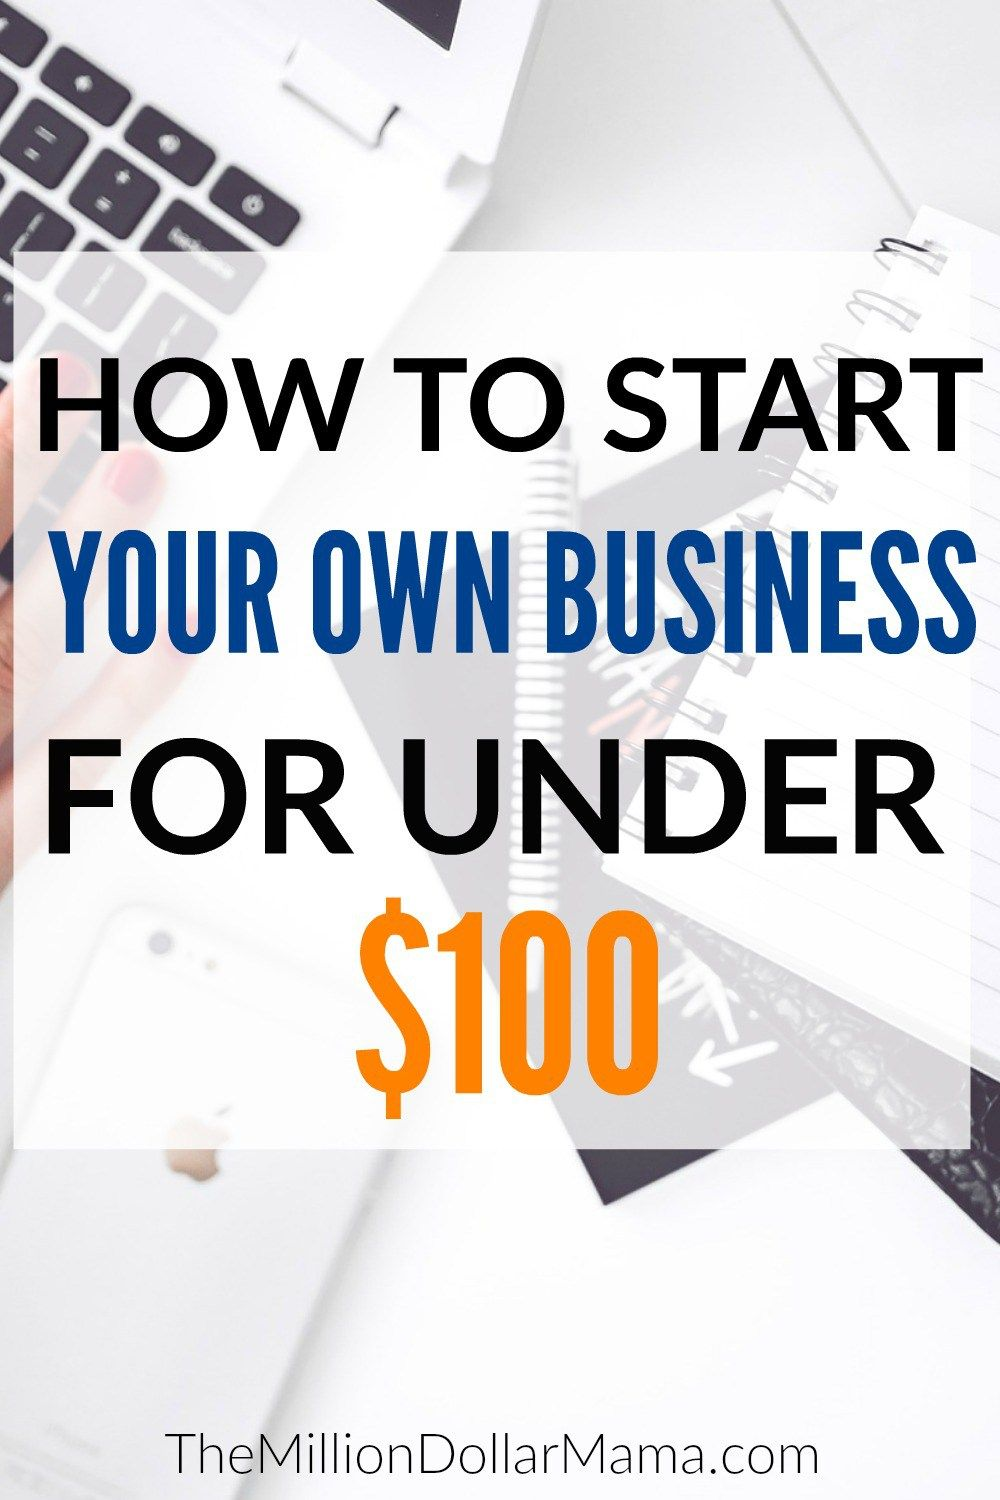 5 Low-Cost Business Ideas You Can Start Today | Work From Home ...